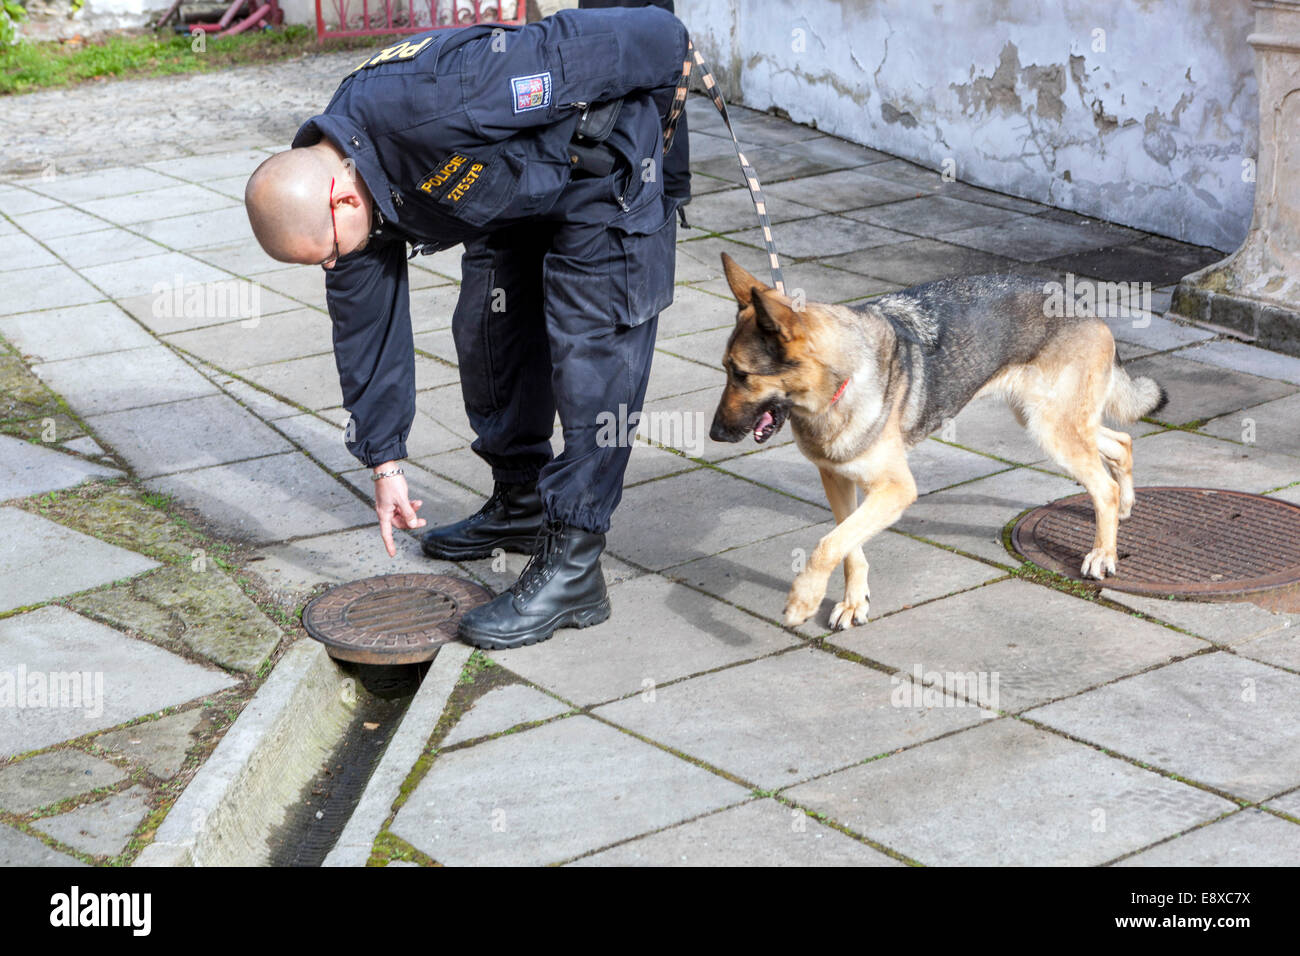 Police with dog, a German shepherd searches for explosives, control objects,  Czech police - Stock Image